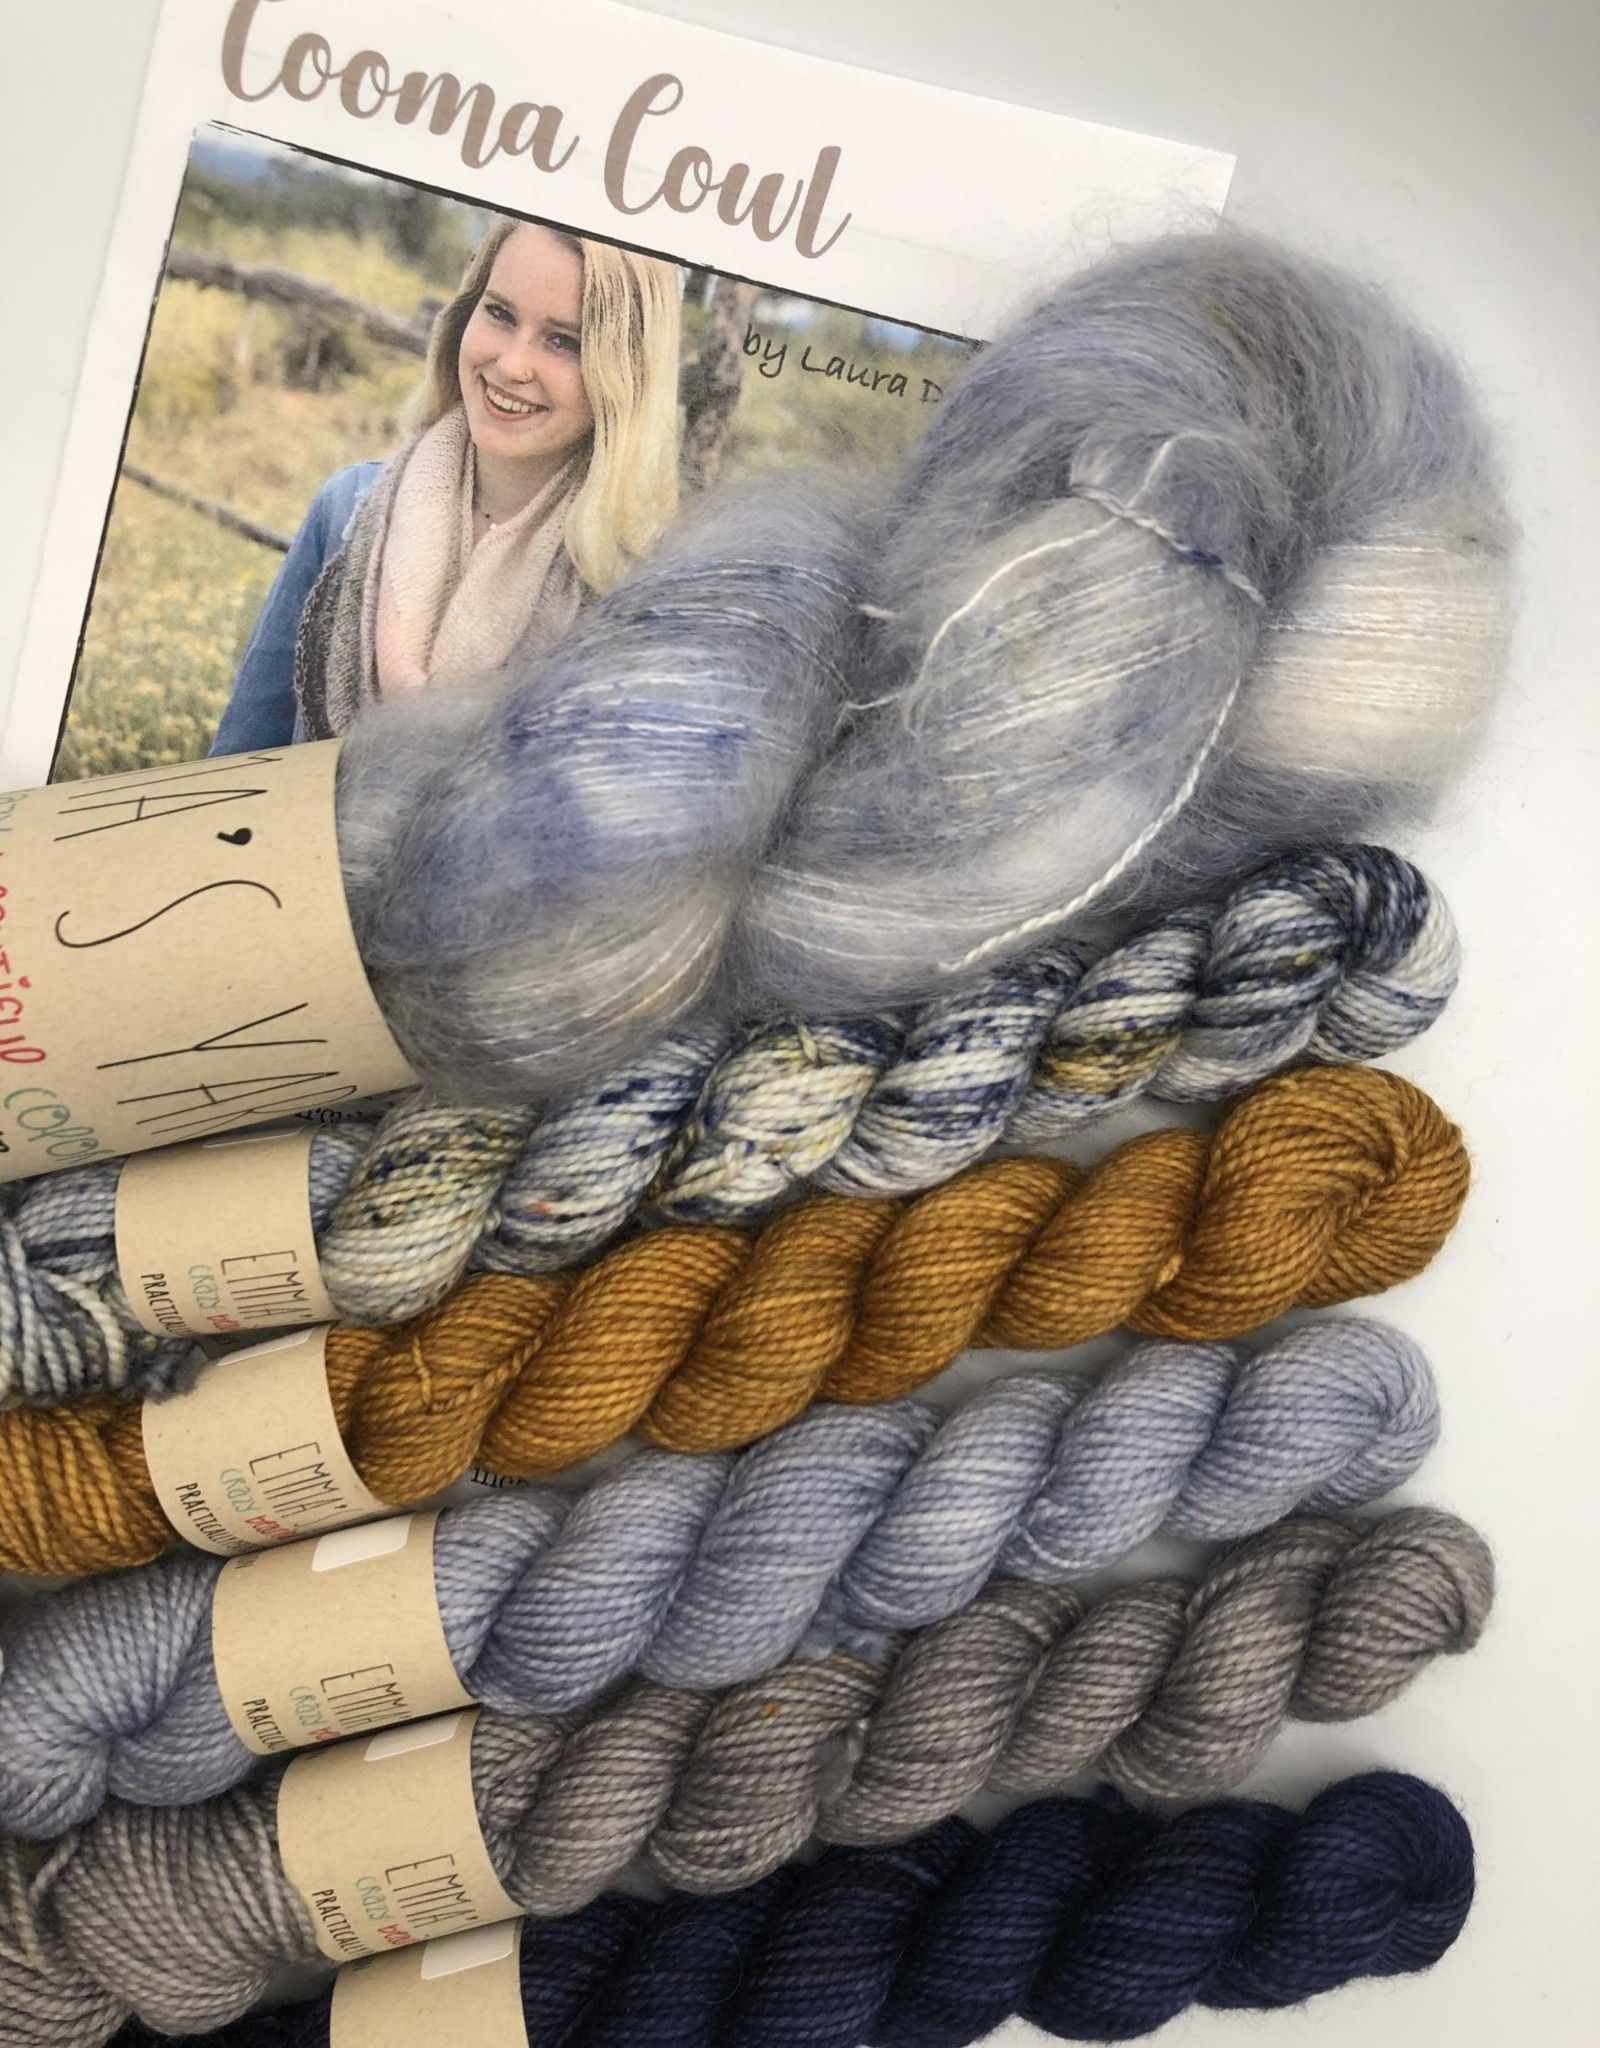 Emma's Yarn Brewers Cooma Cowl